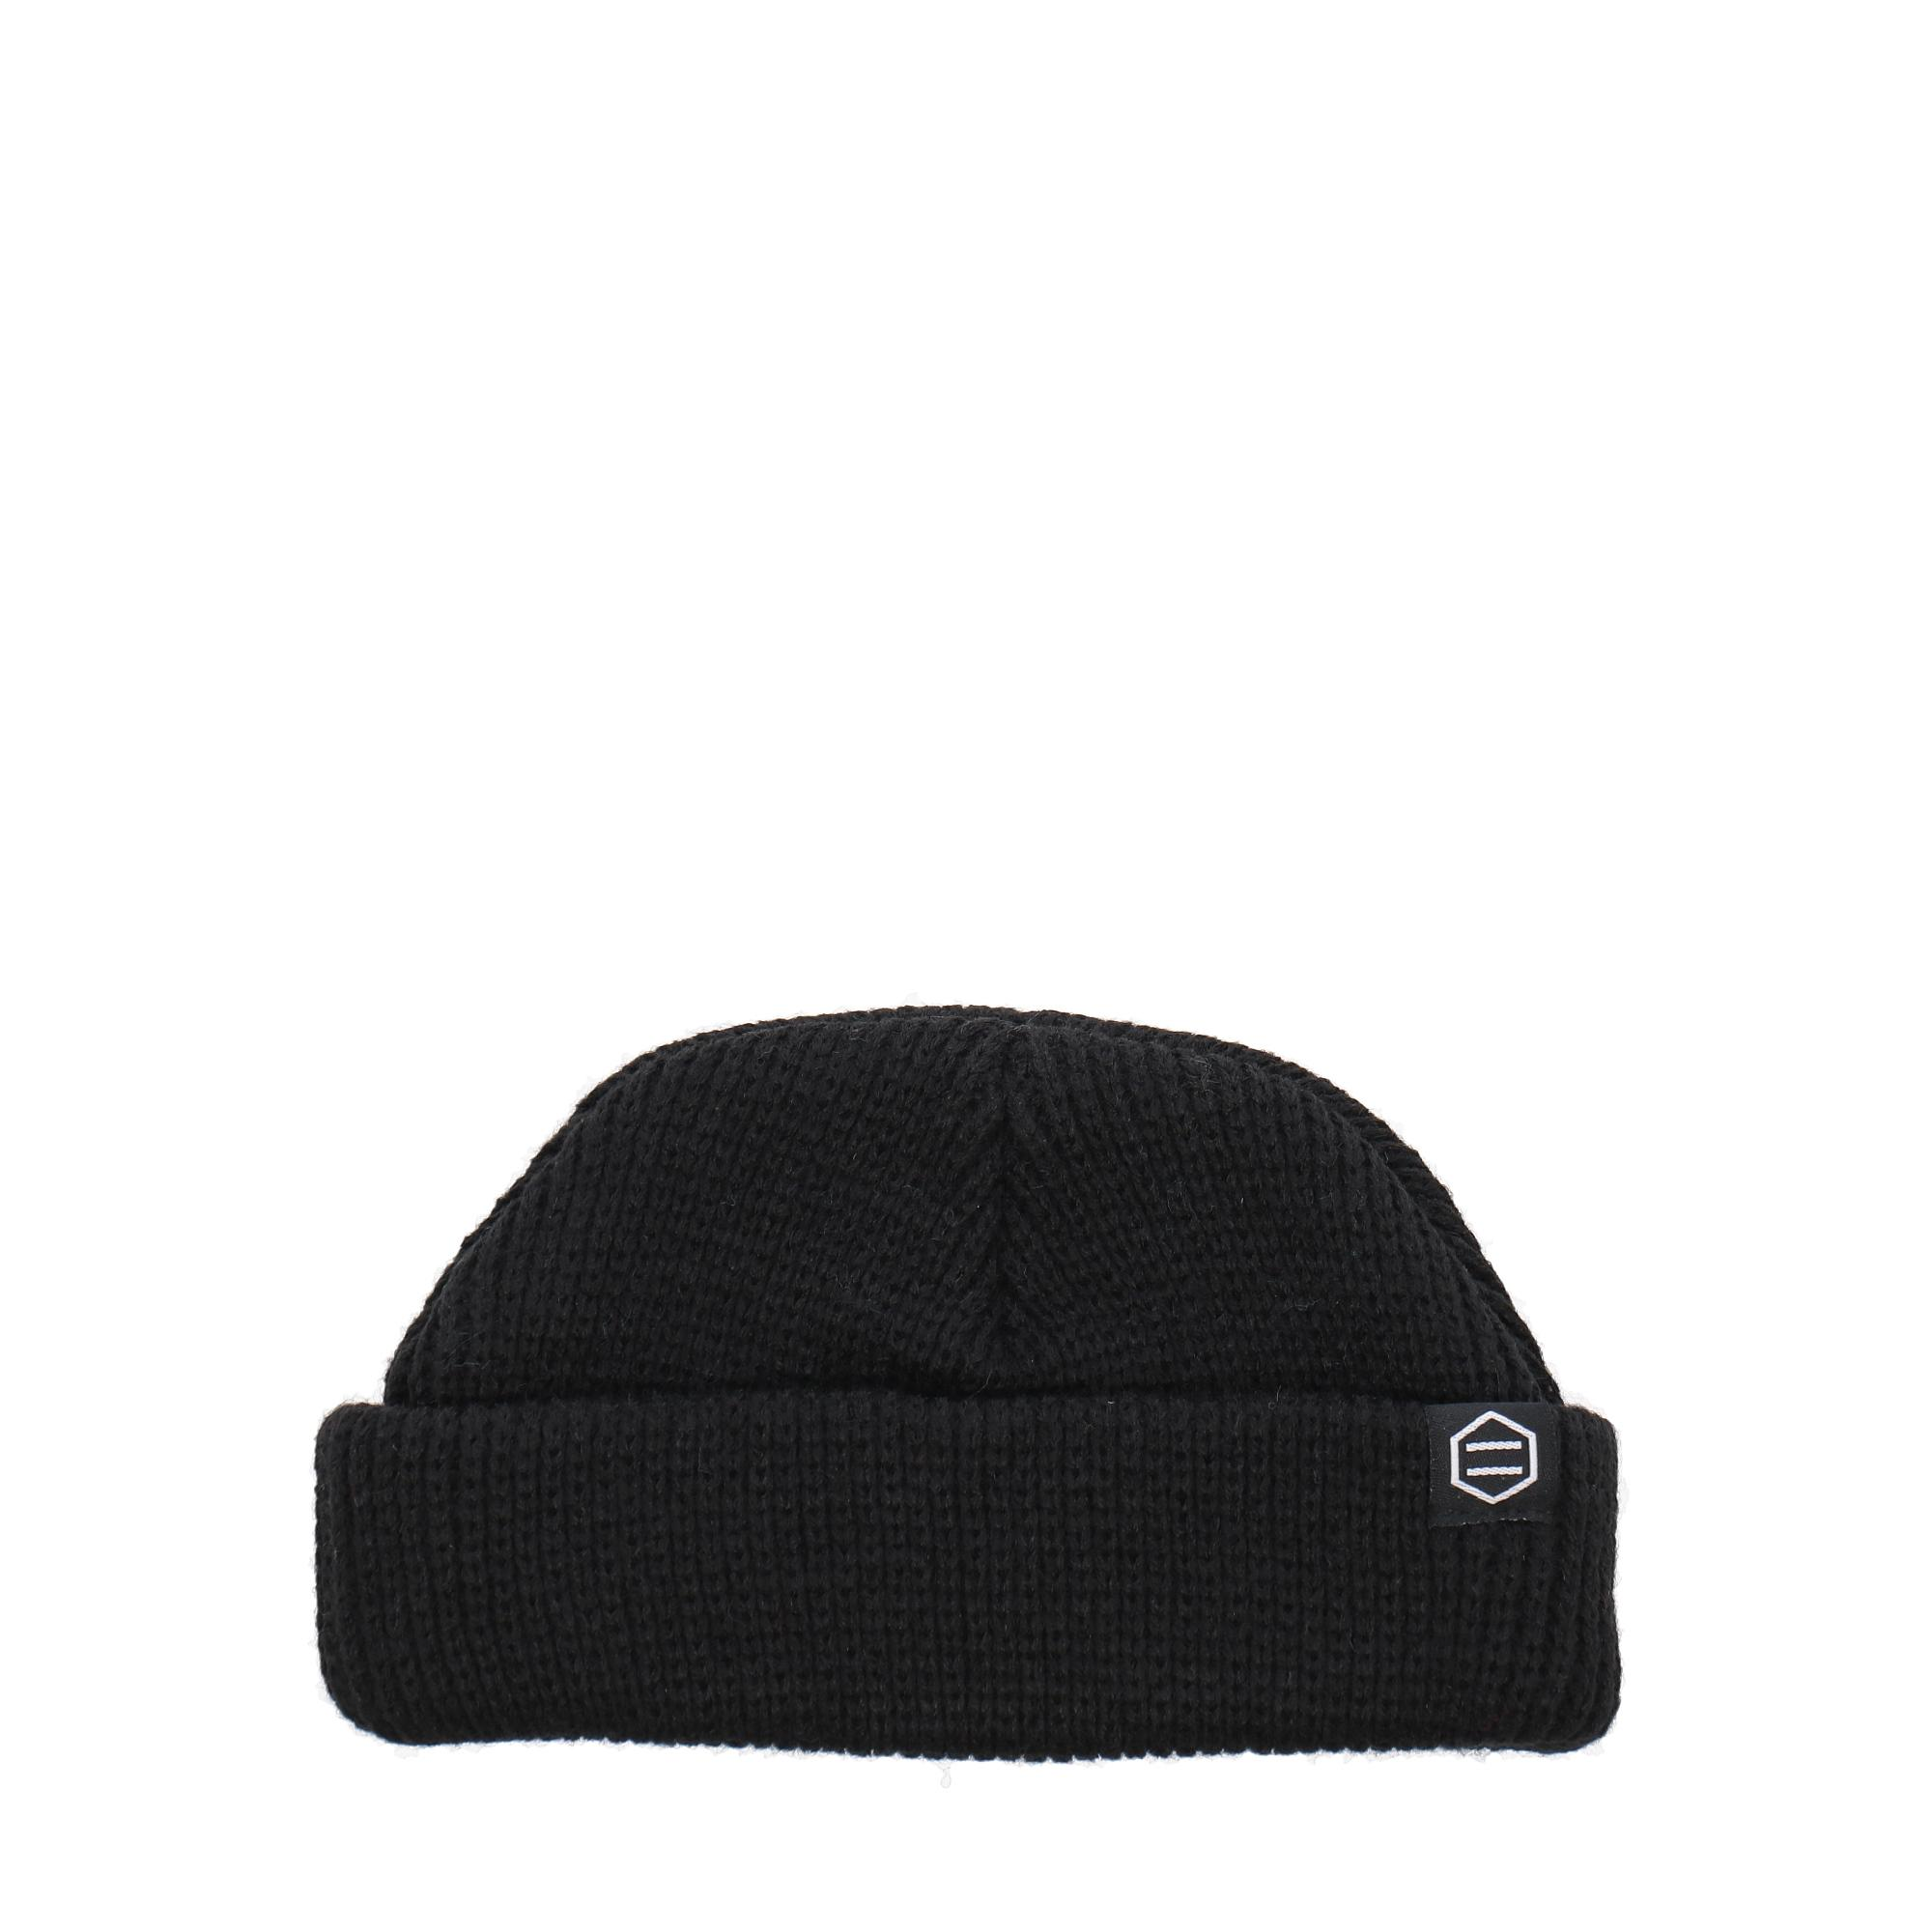 Dolly Noire Black Sailor Beanie Black